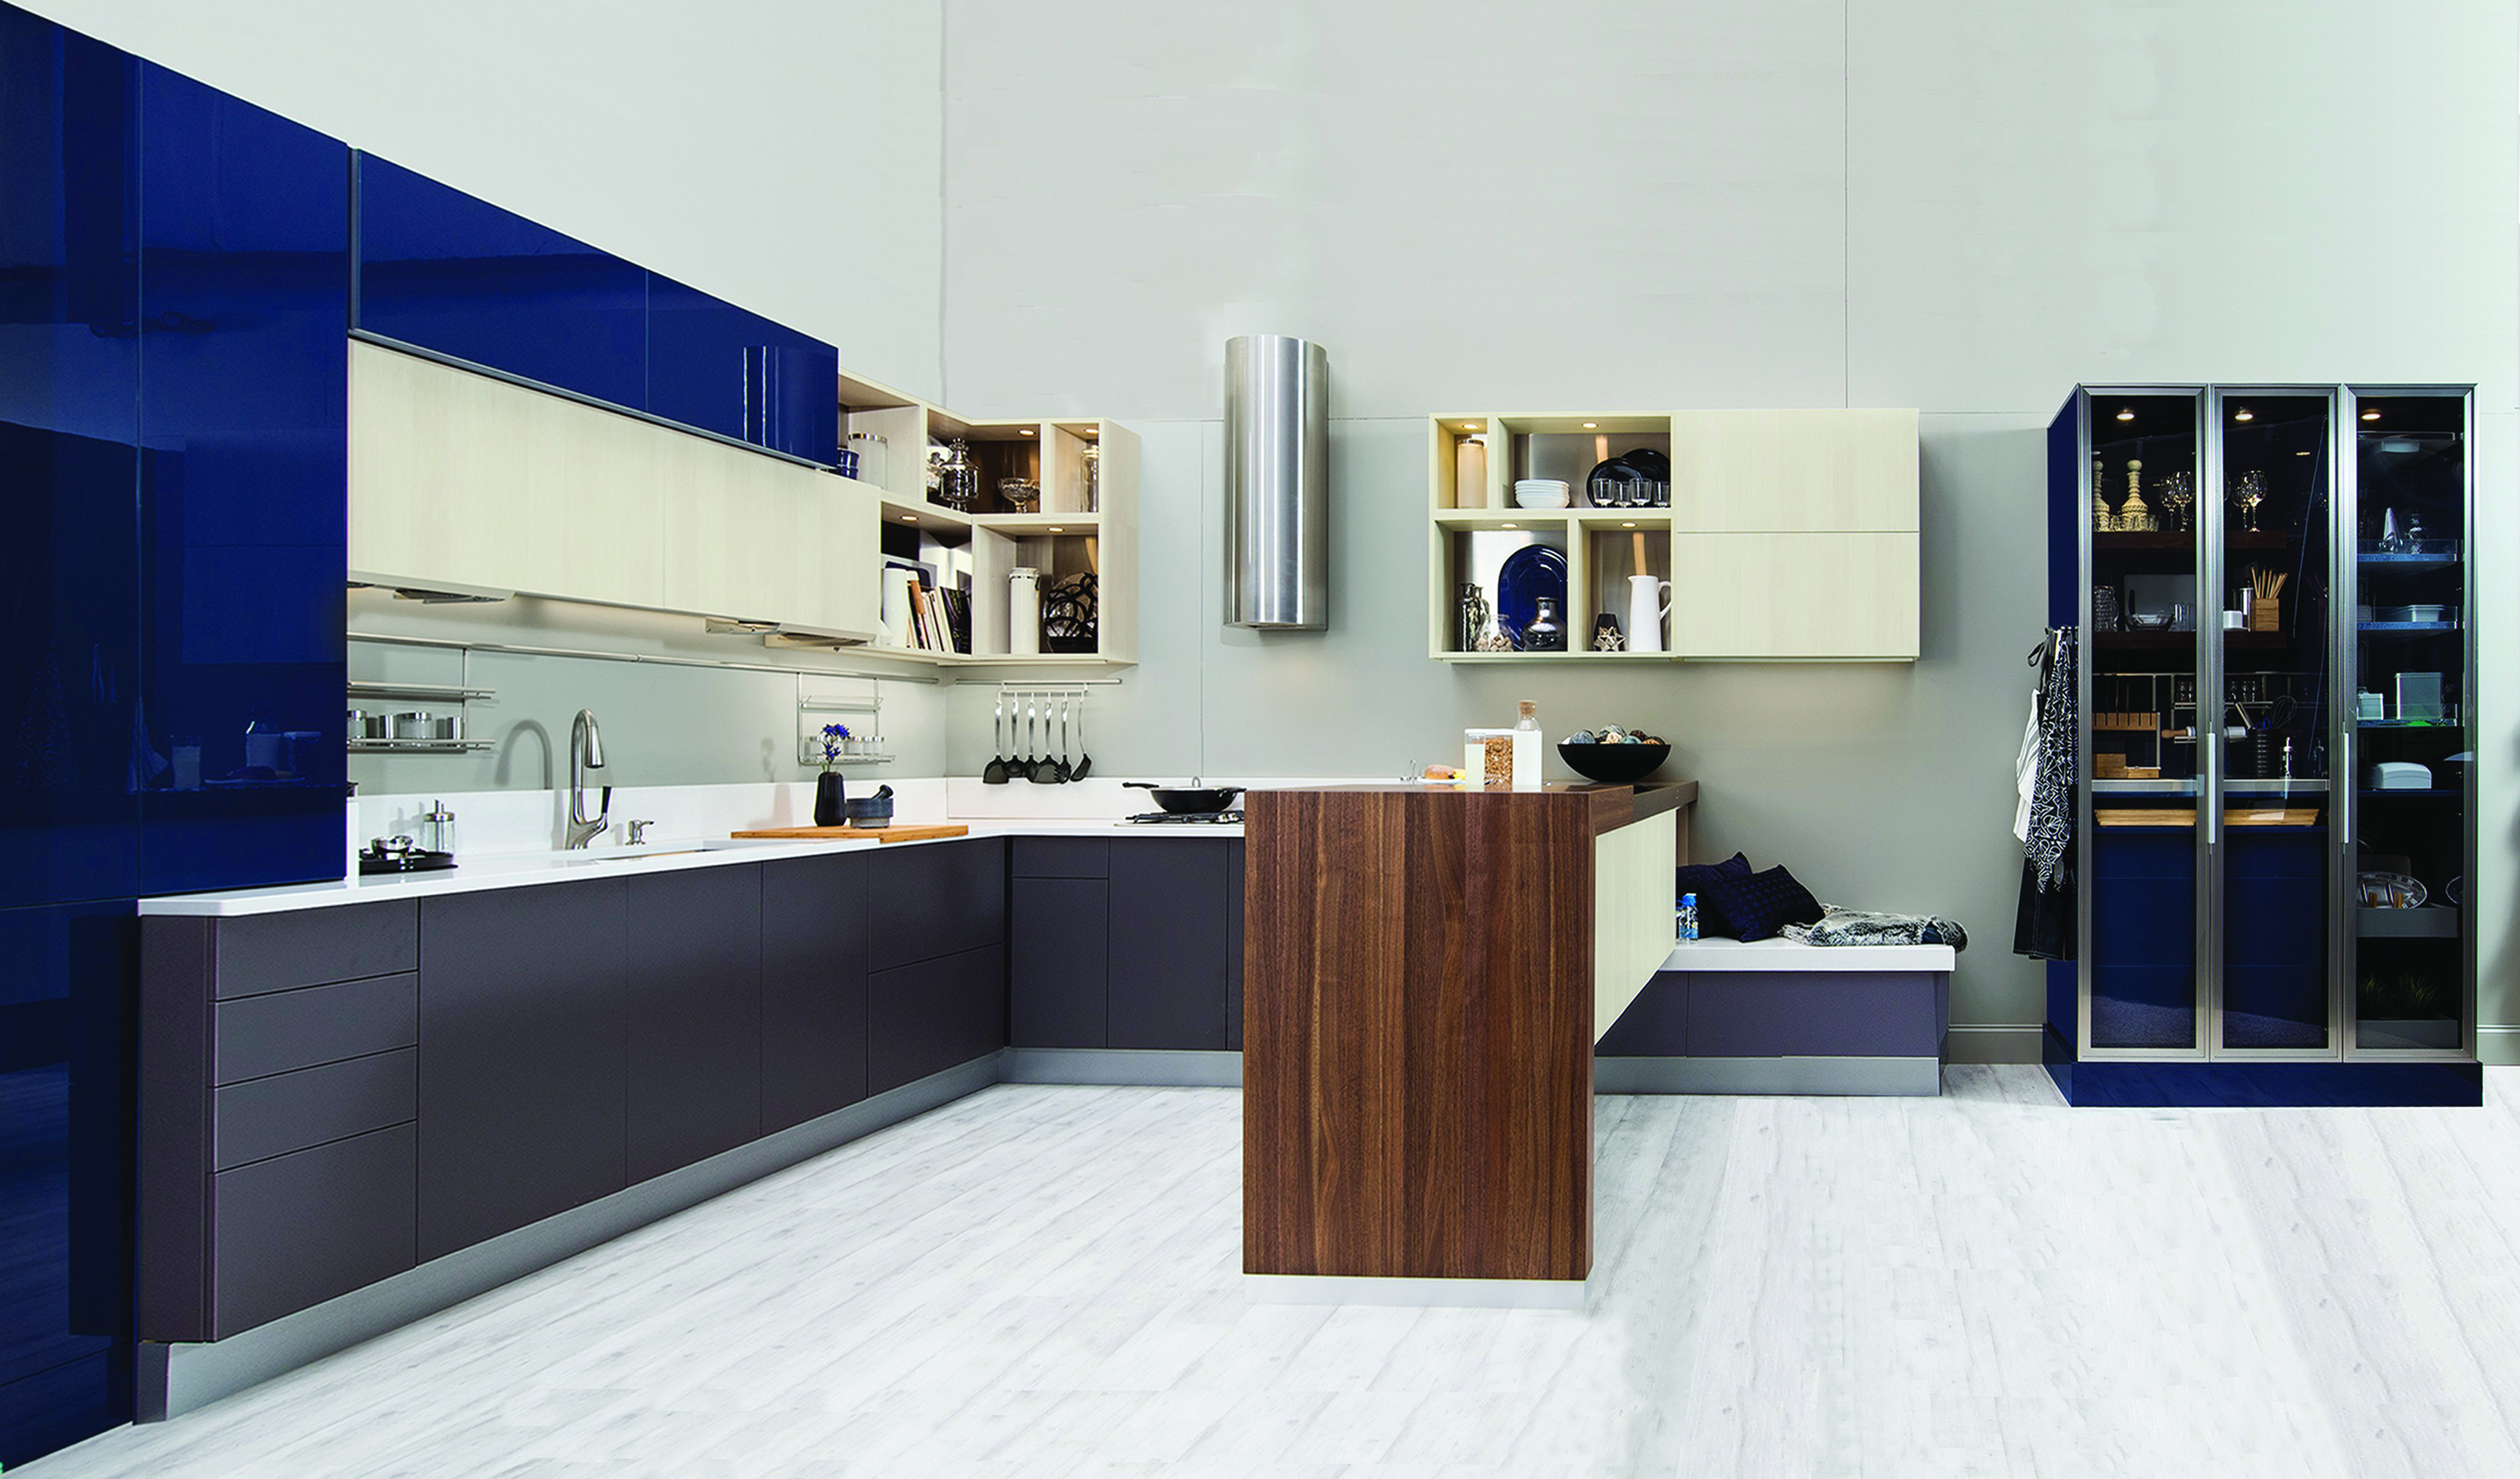 top kitchen cabinets the game cabinet trends frameless paint over stains and soft no longer does a have to be in one color many exhibiters displayed kitchens